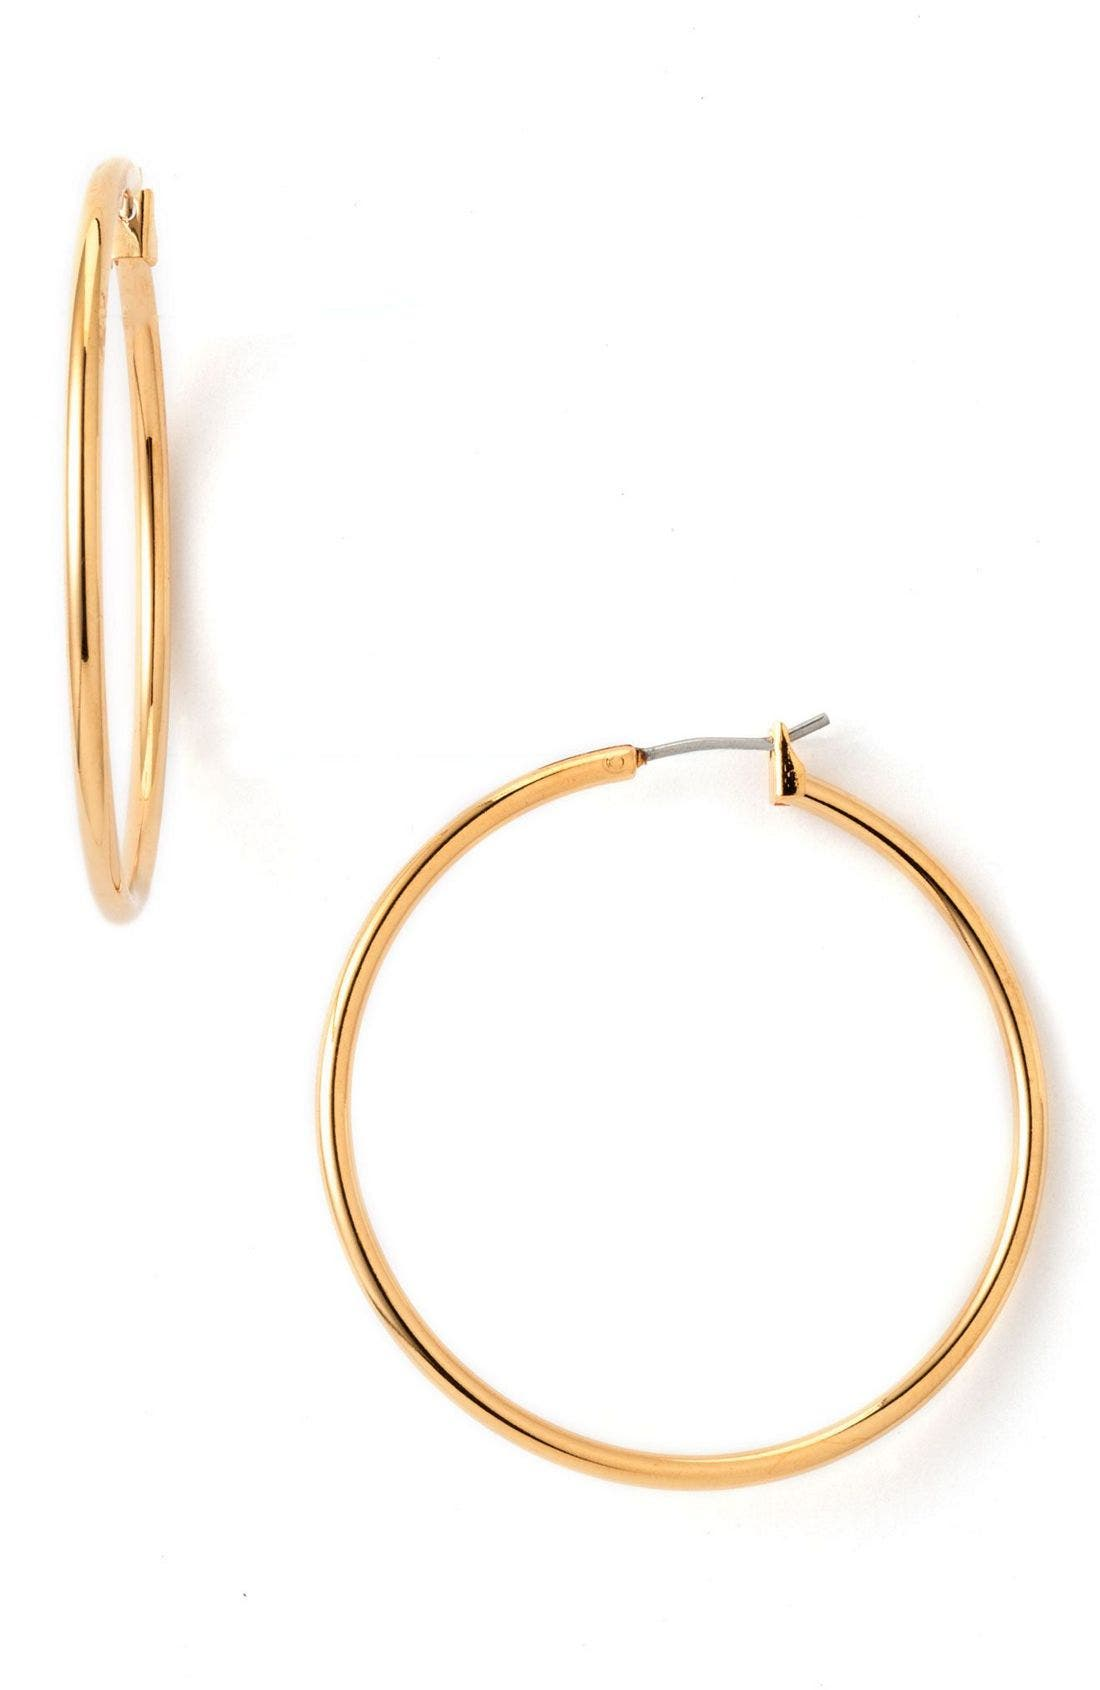 Alternate Image 1 Selected - Nordstrom Classic Hoop Earrings (Nordstrom Exclusive)